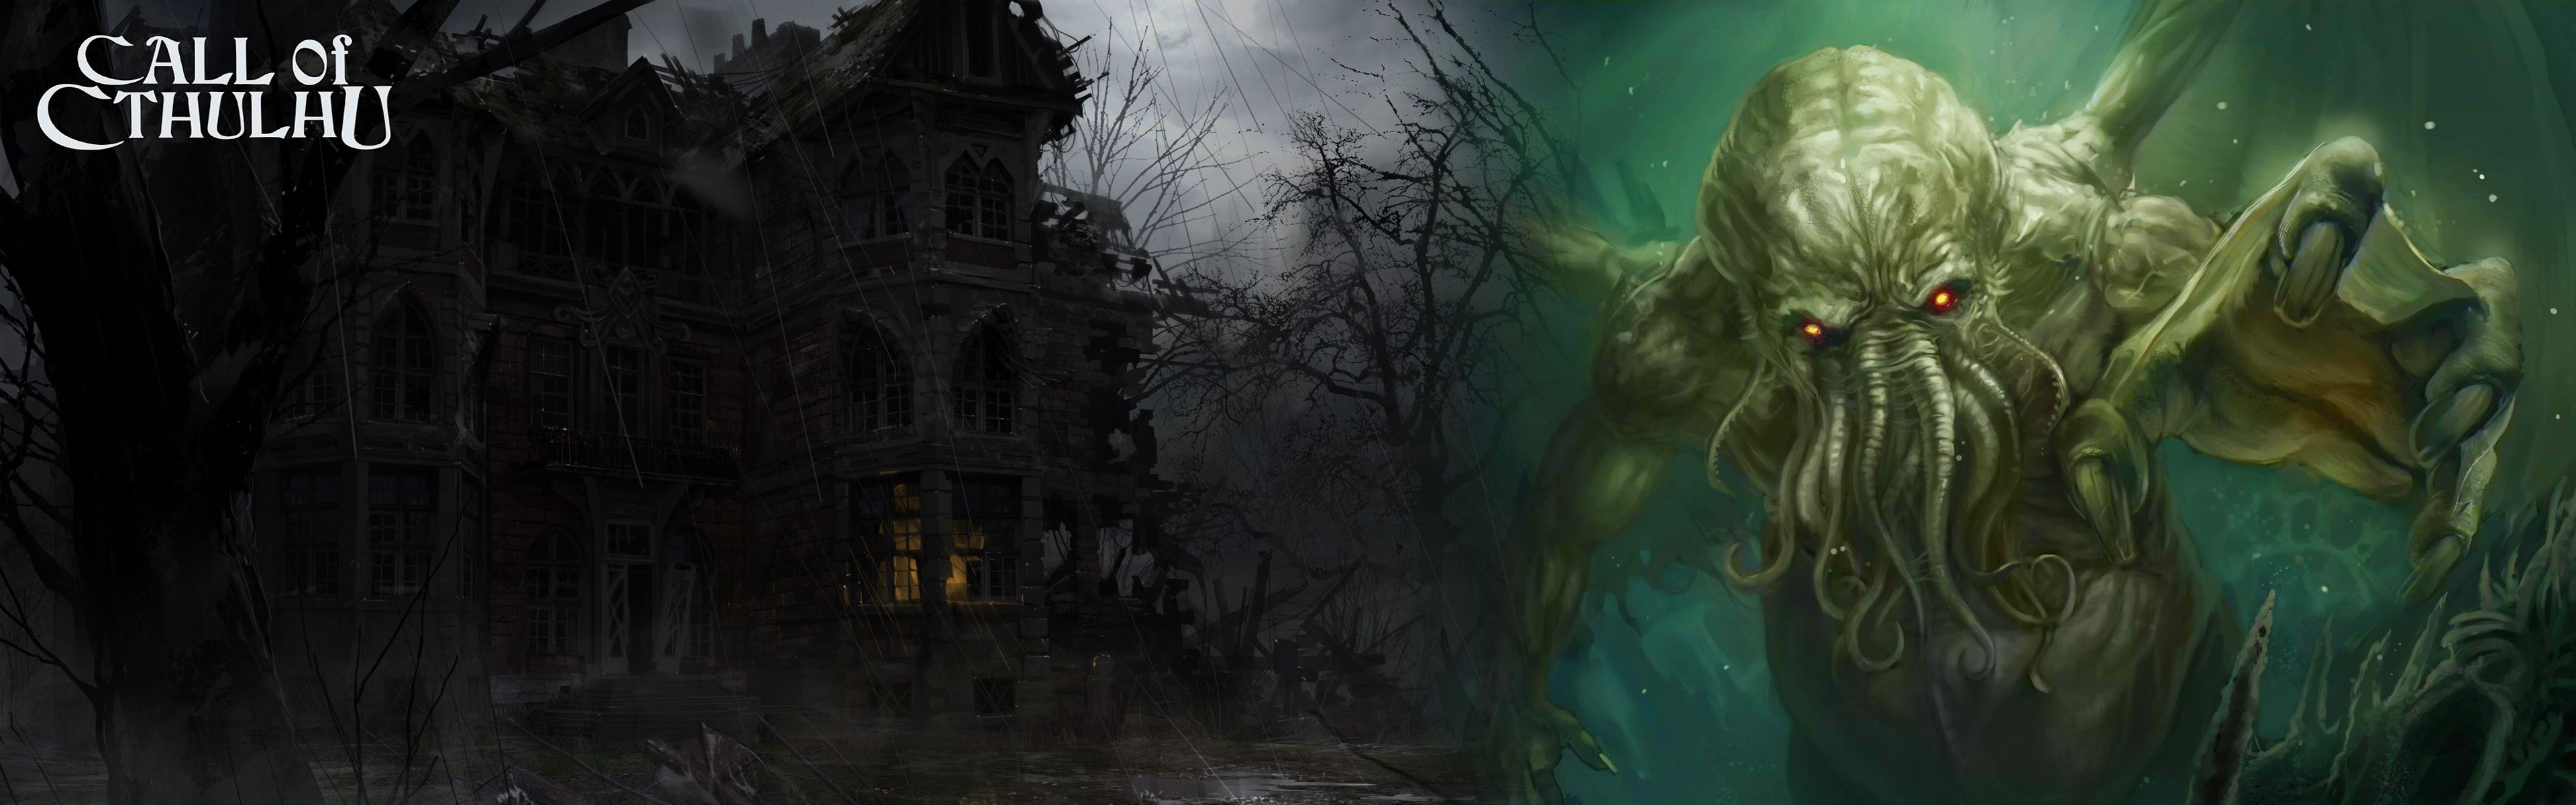 Photo Collection Cthulhu Wallpaper Moving HD Wallpapers Download Free Images Wallpaper [1000image.com]